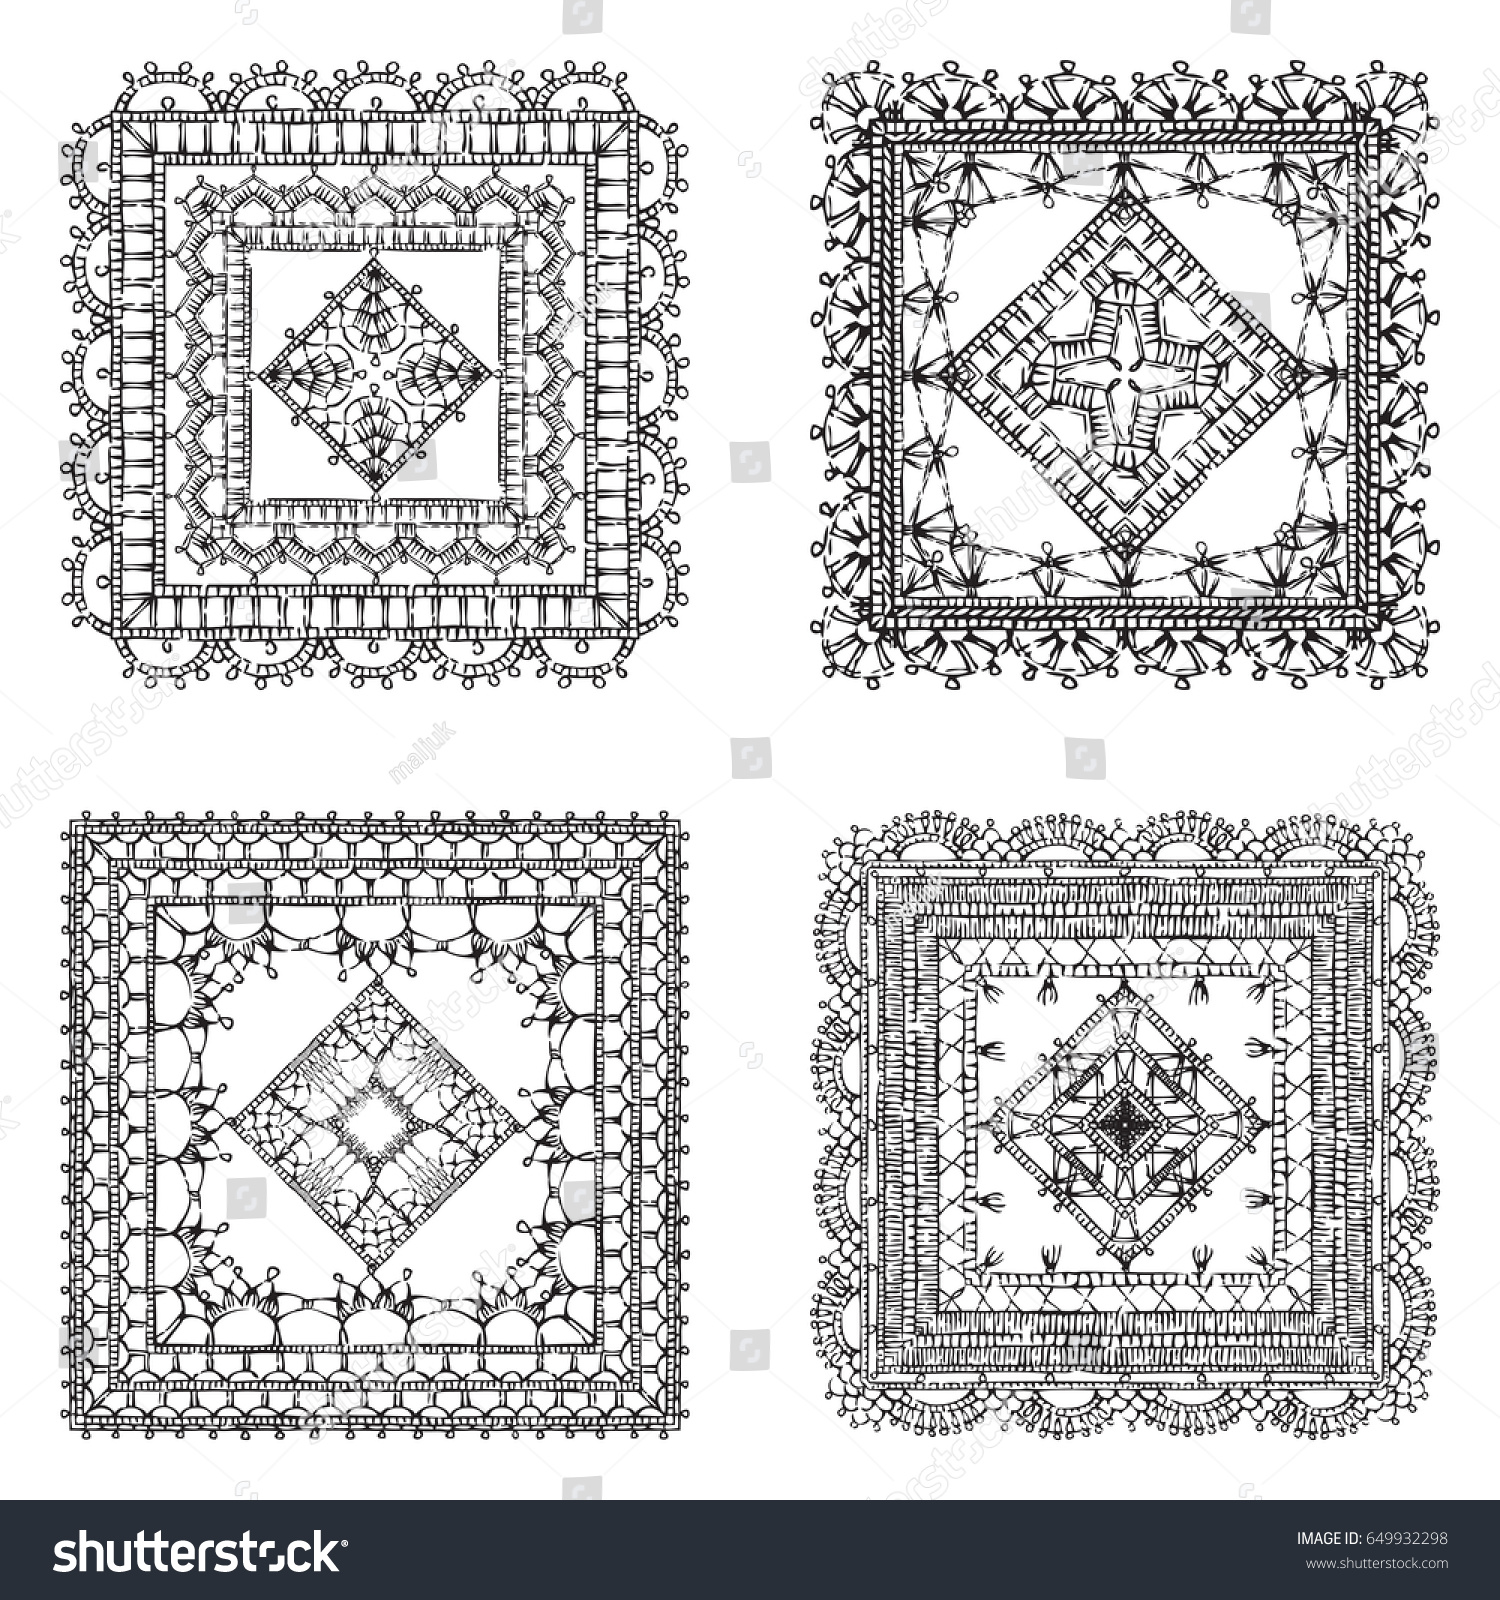 Vector Set Lace Crochet Square Ornaments Stock Vector HD (Royalty ...